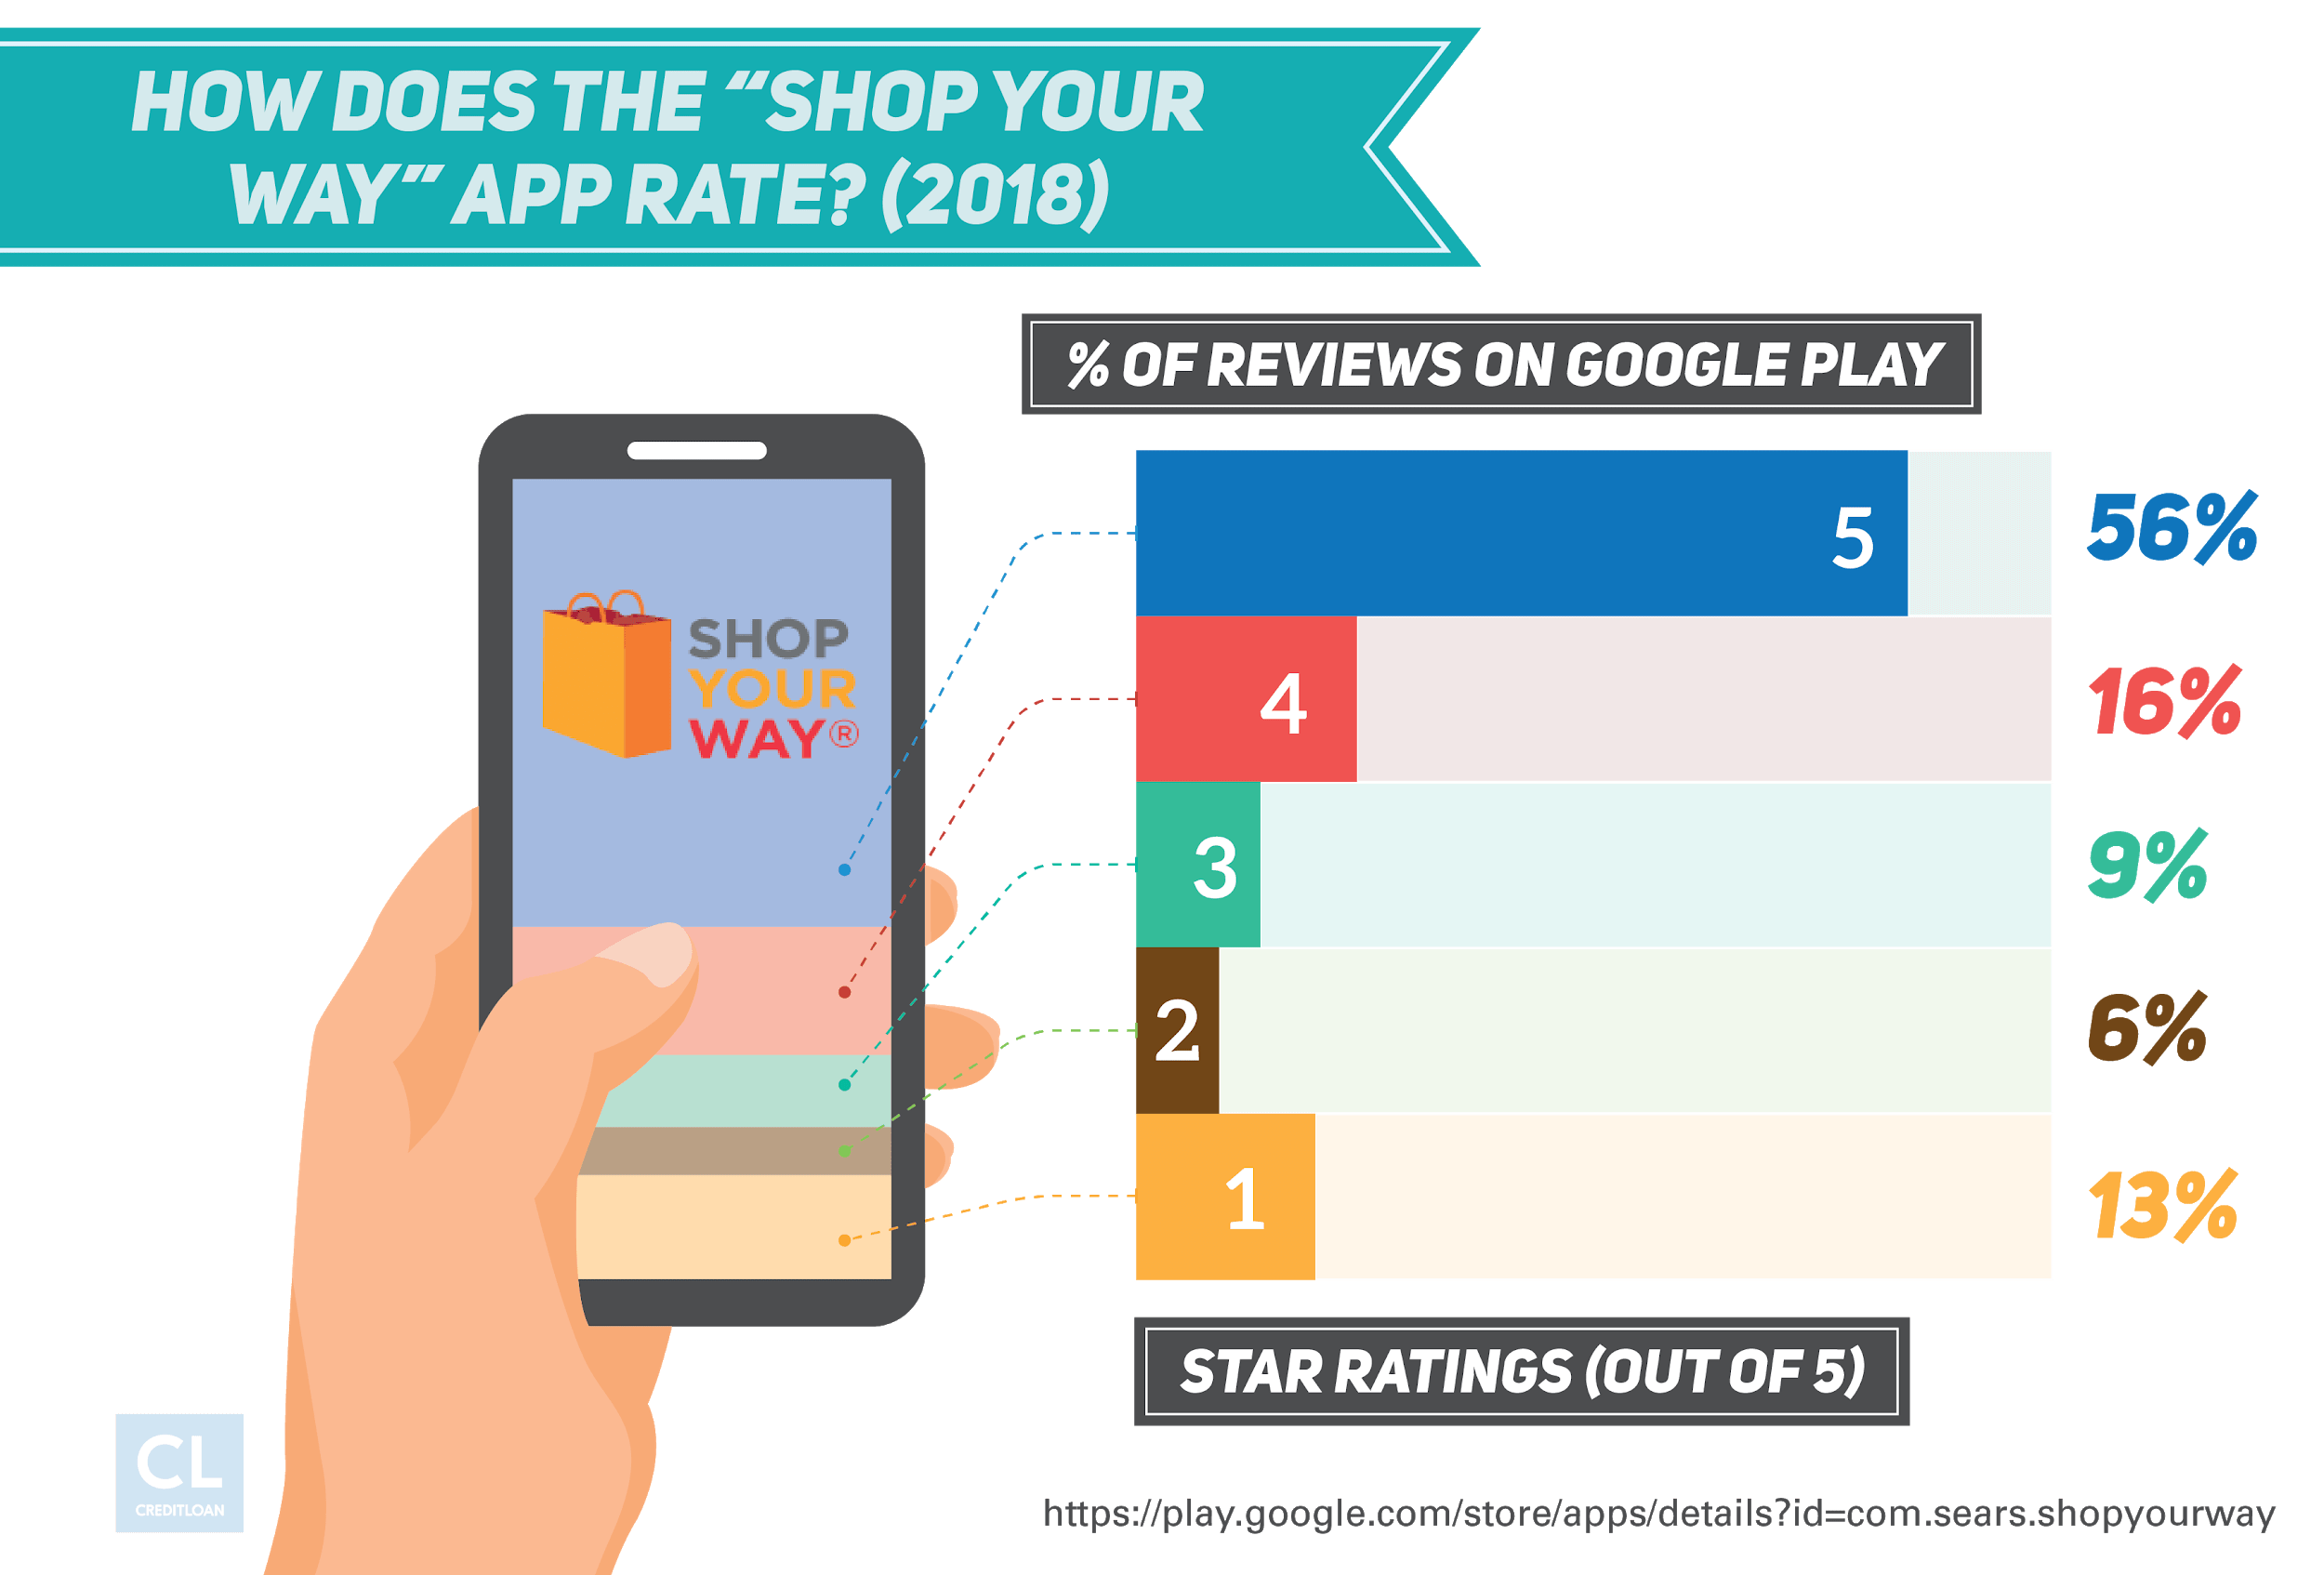 Survey: How Does the Shop Your Way App Rate